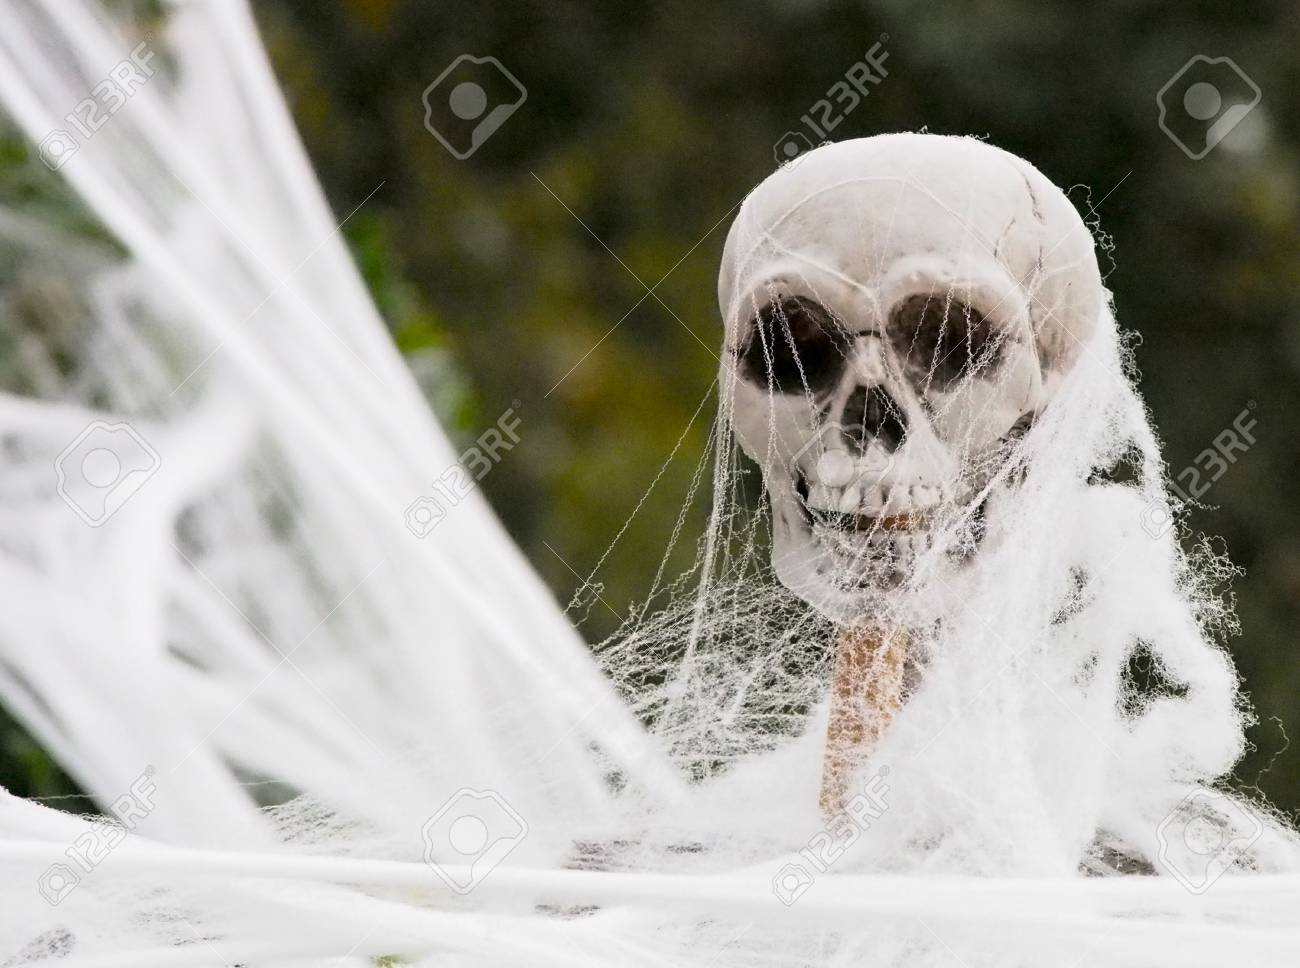 A Spooky Plastic Skeleton Being Covered In Fake Spiderweb For